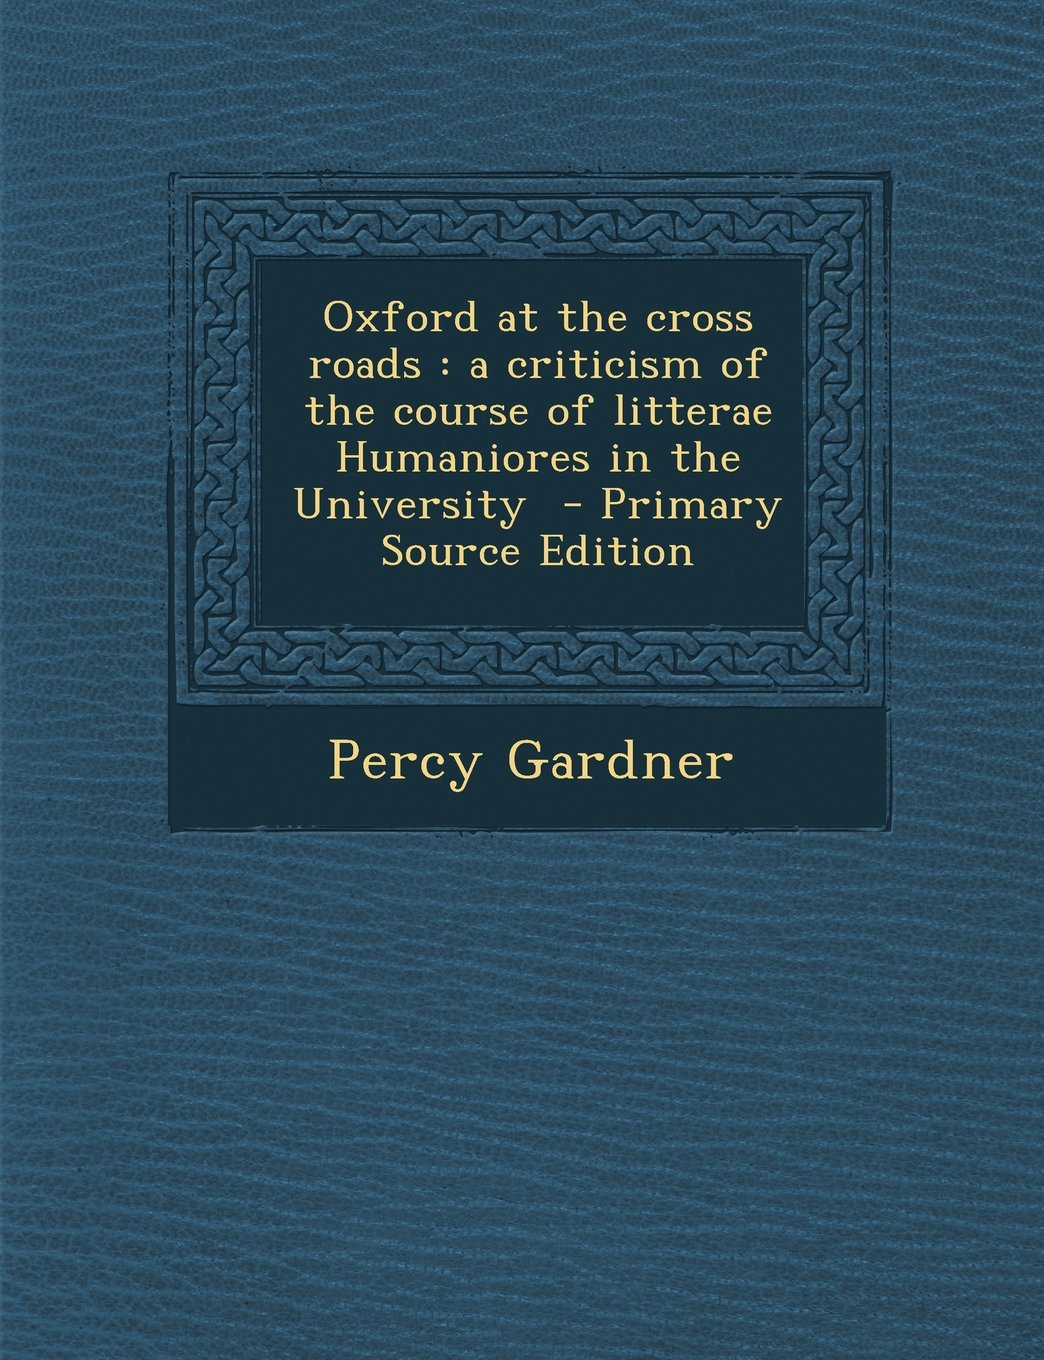 Download Oxford at the Cross Roads: A Criticism of the Course of Litterae Humaniores in the University - Primary Source Edition pdf